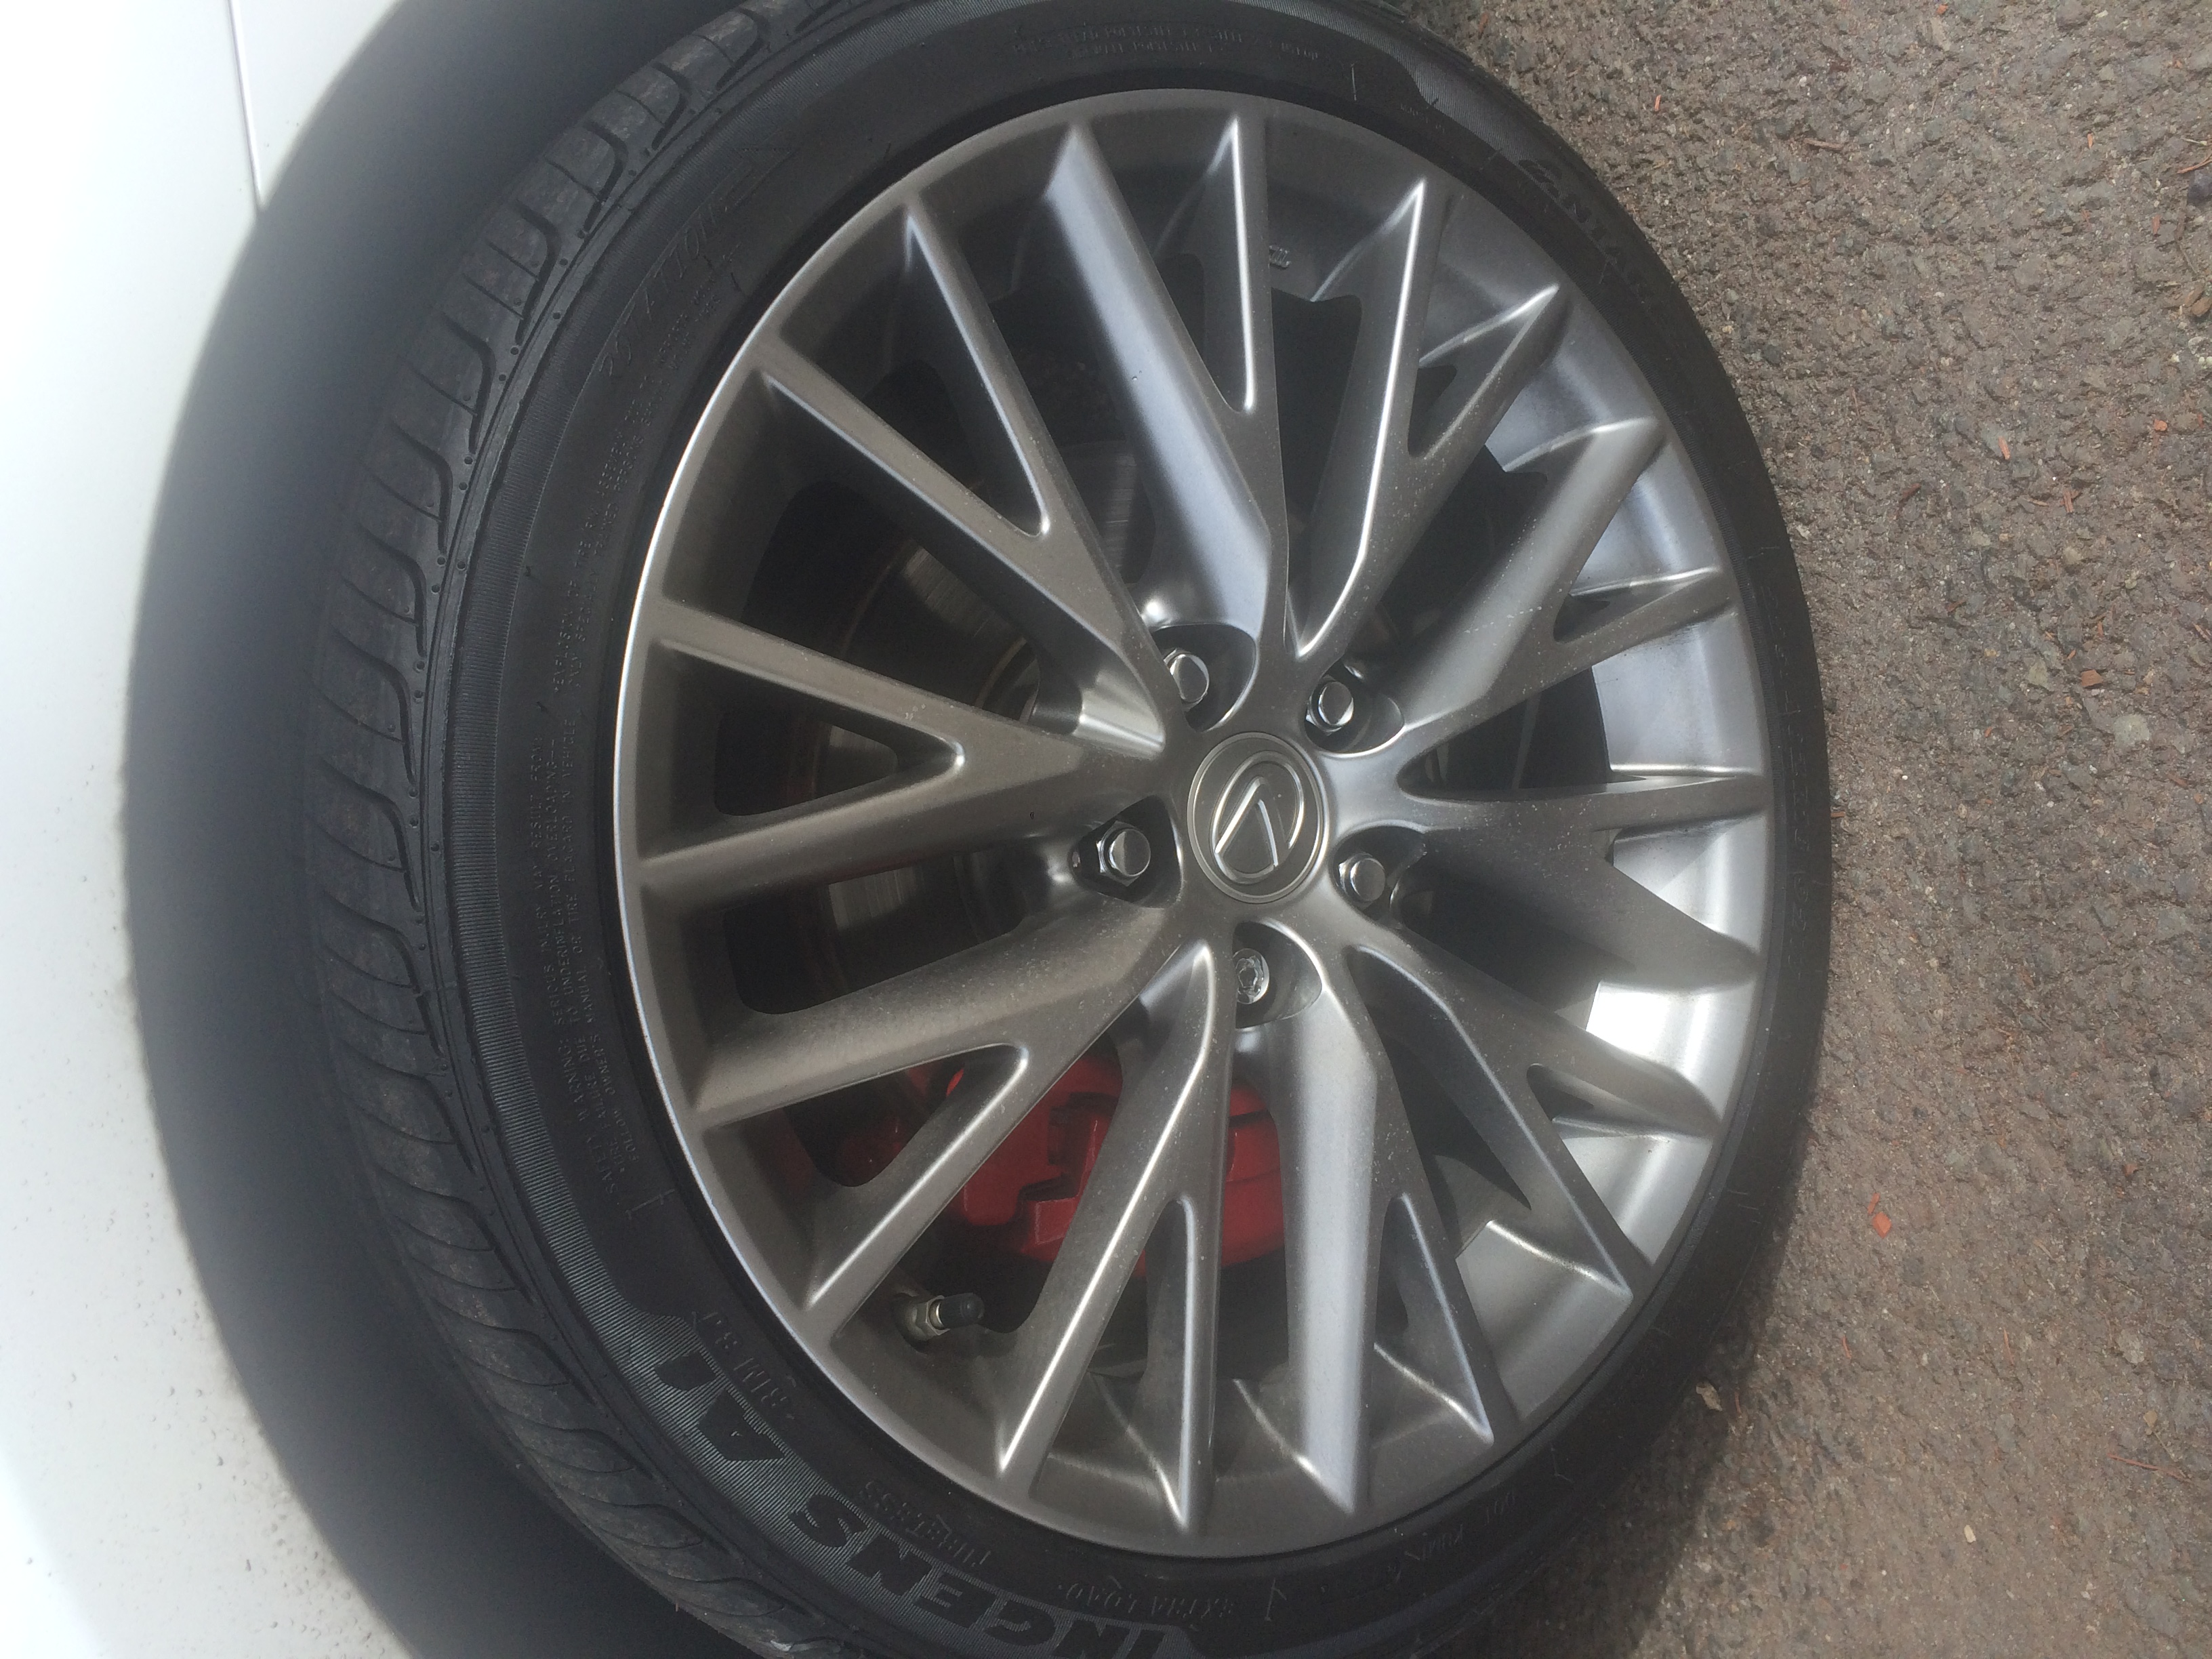 MA 2014 Lexus IS250 300 OEM wheels with or w o tires no TPS